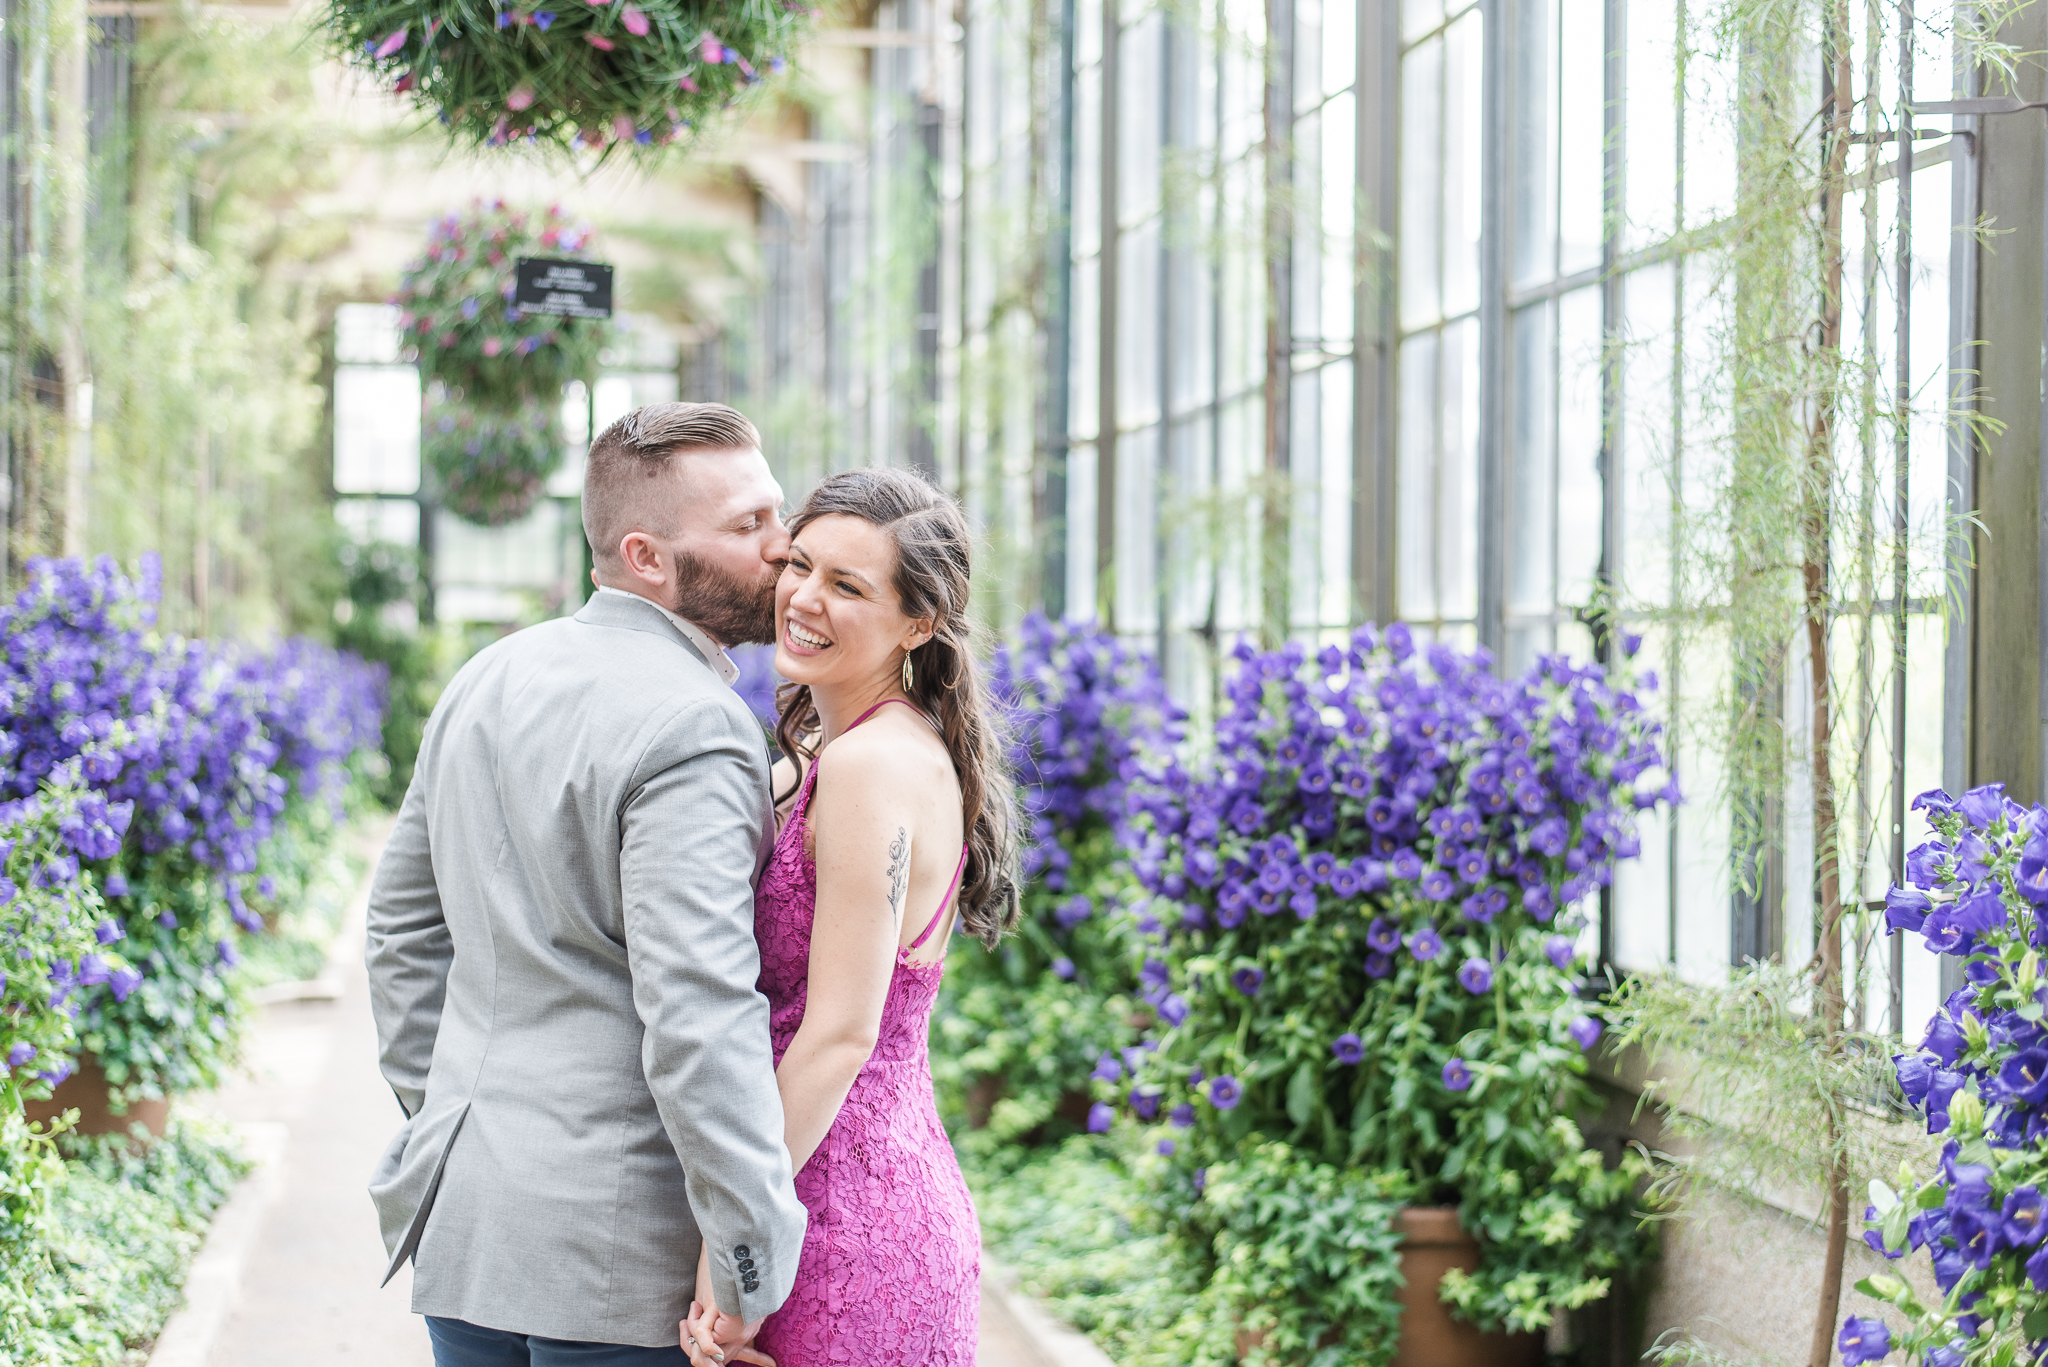 05_18_2019_Dana_Slifer_Photography_Heather_and_Sean_Engagement_Session_WEB_08.jpg